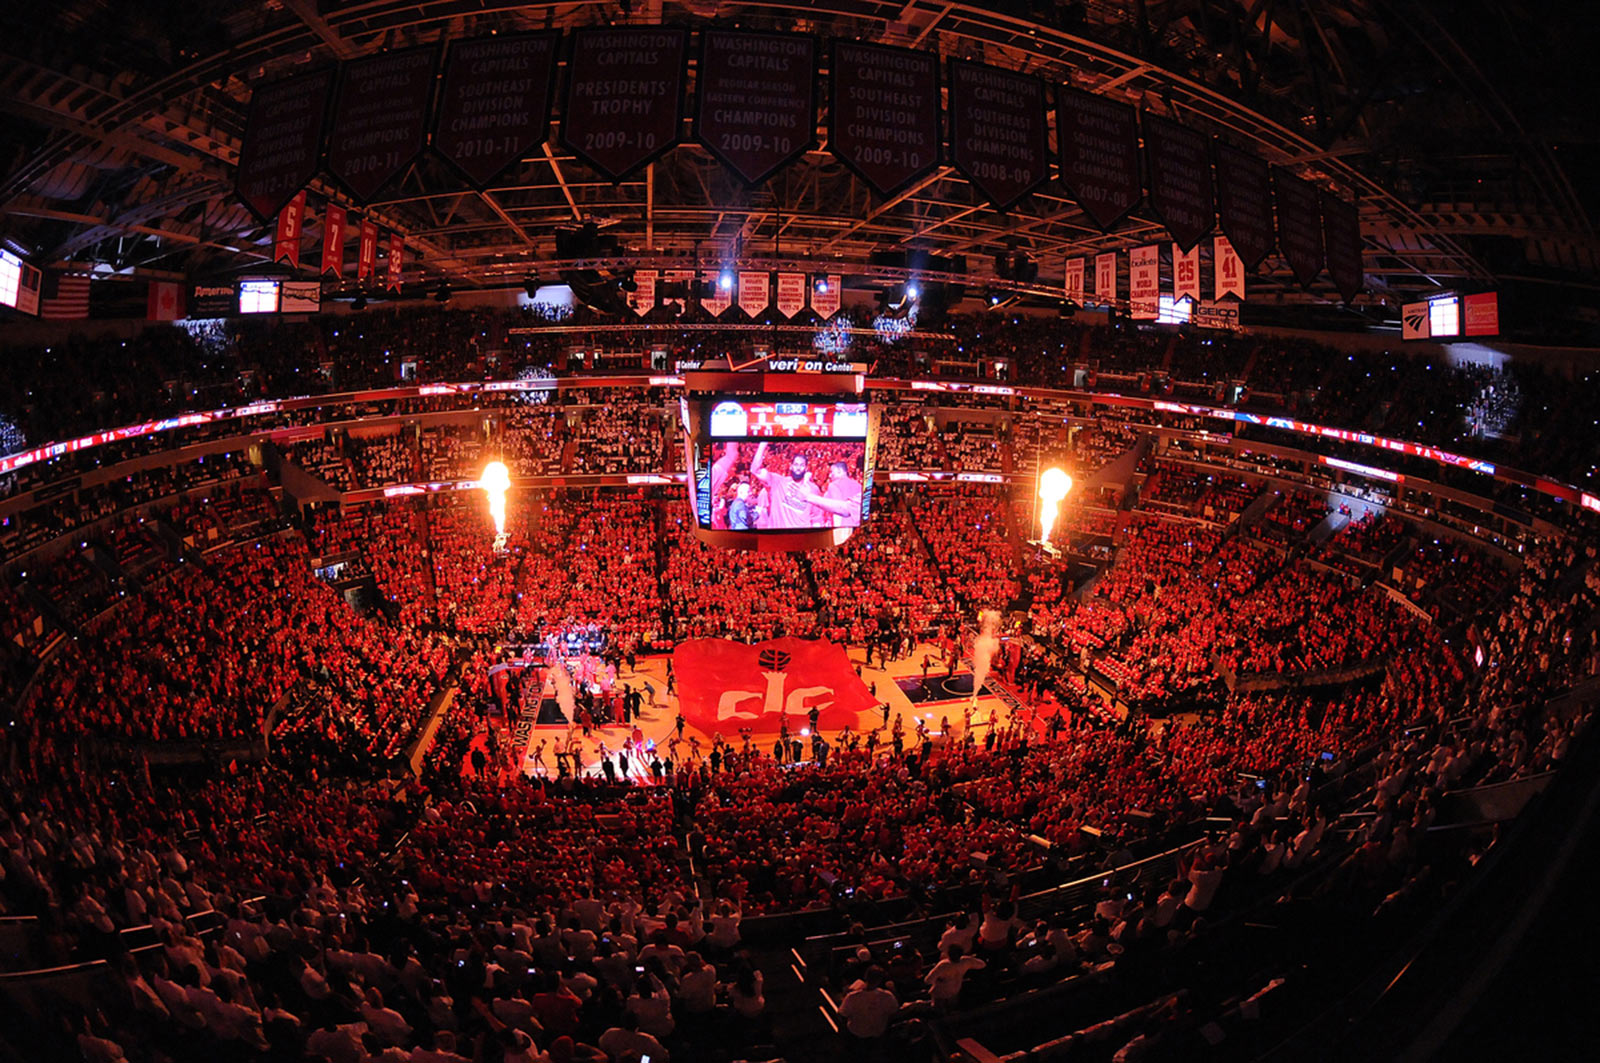 Washington Wizards Playoff Game in the Verizon Center